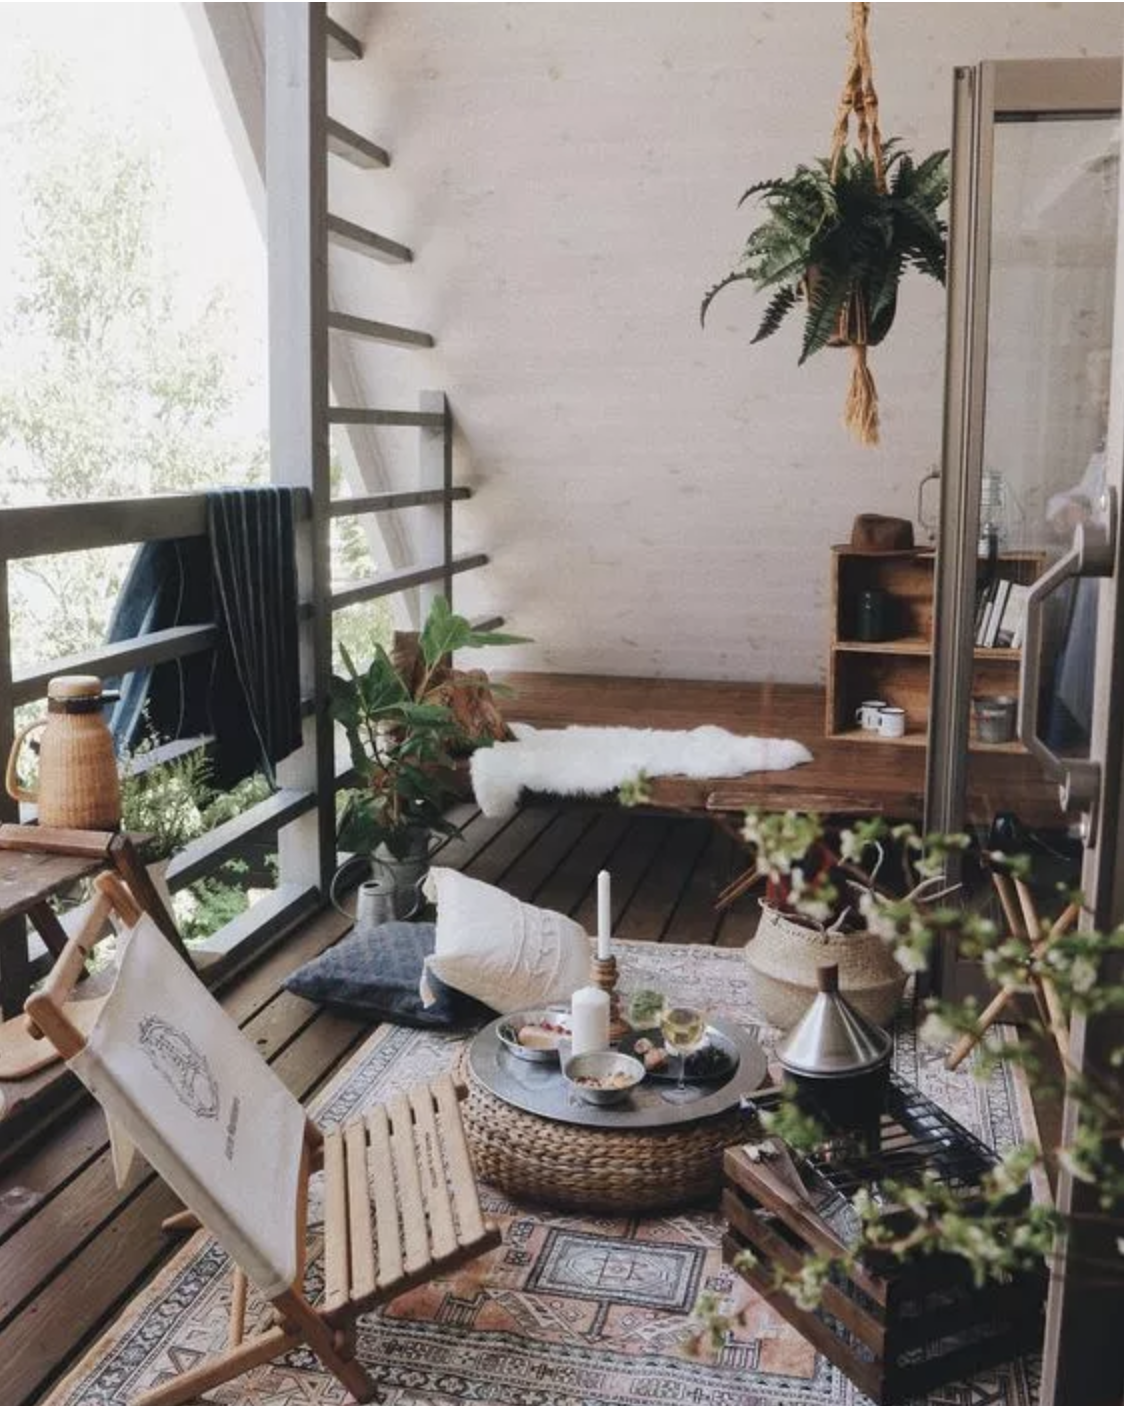 SpaceyStudio_OutdoorBalconyStyling